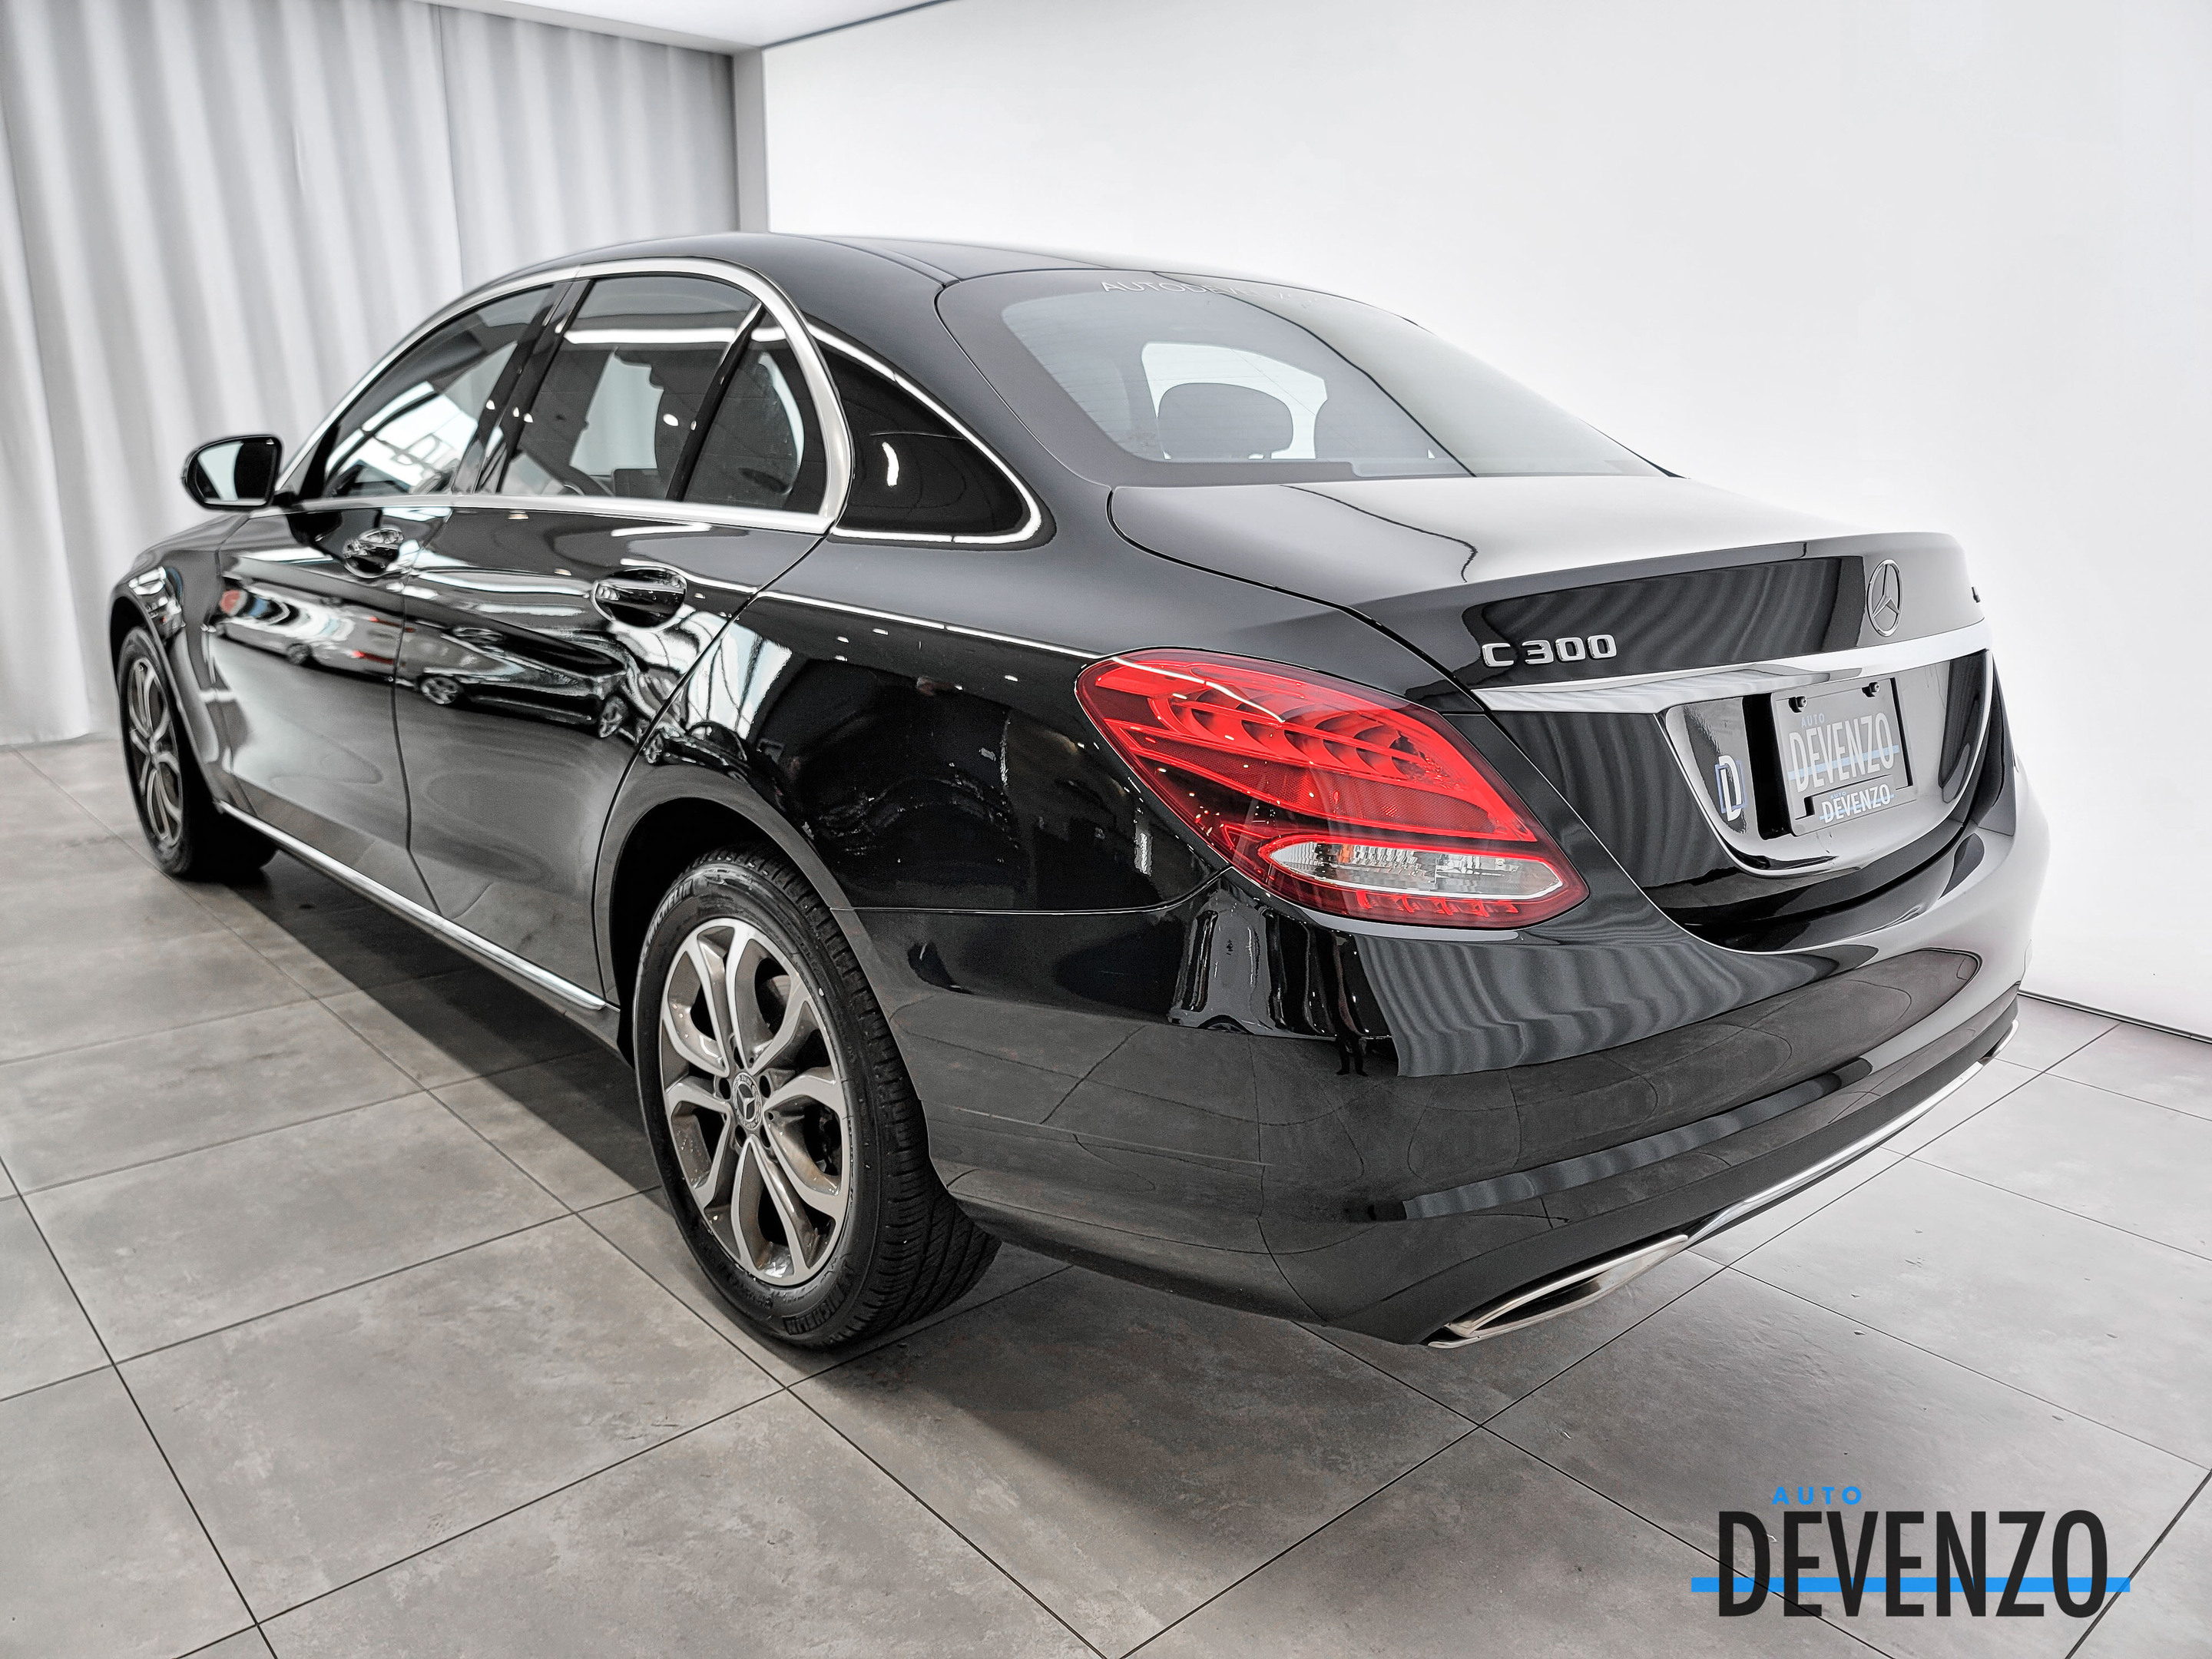 2018 Mercedes-Benz C-Class C 300 4MATIC Intelligent Drive Package complet